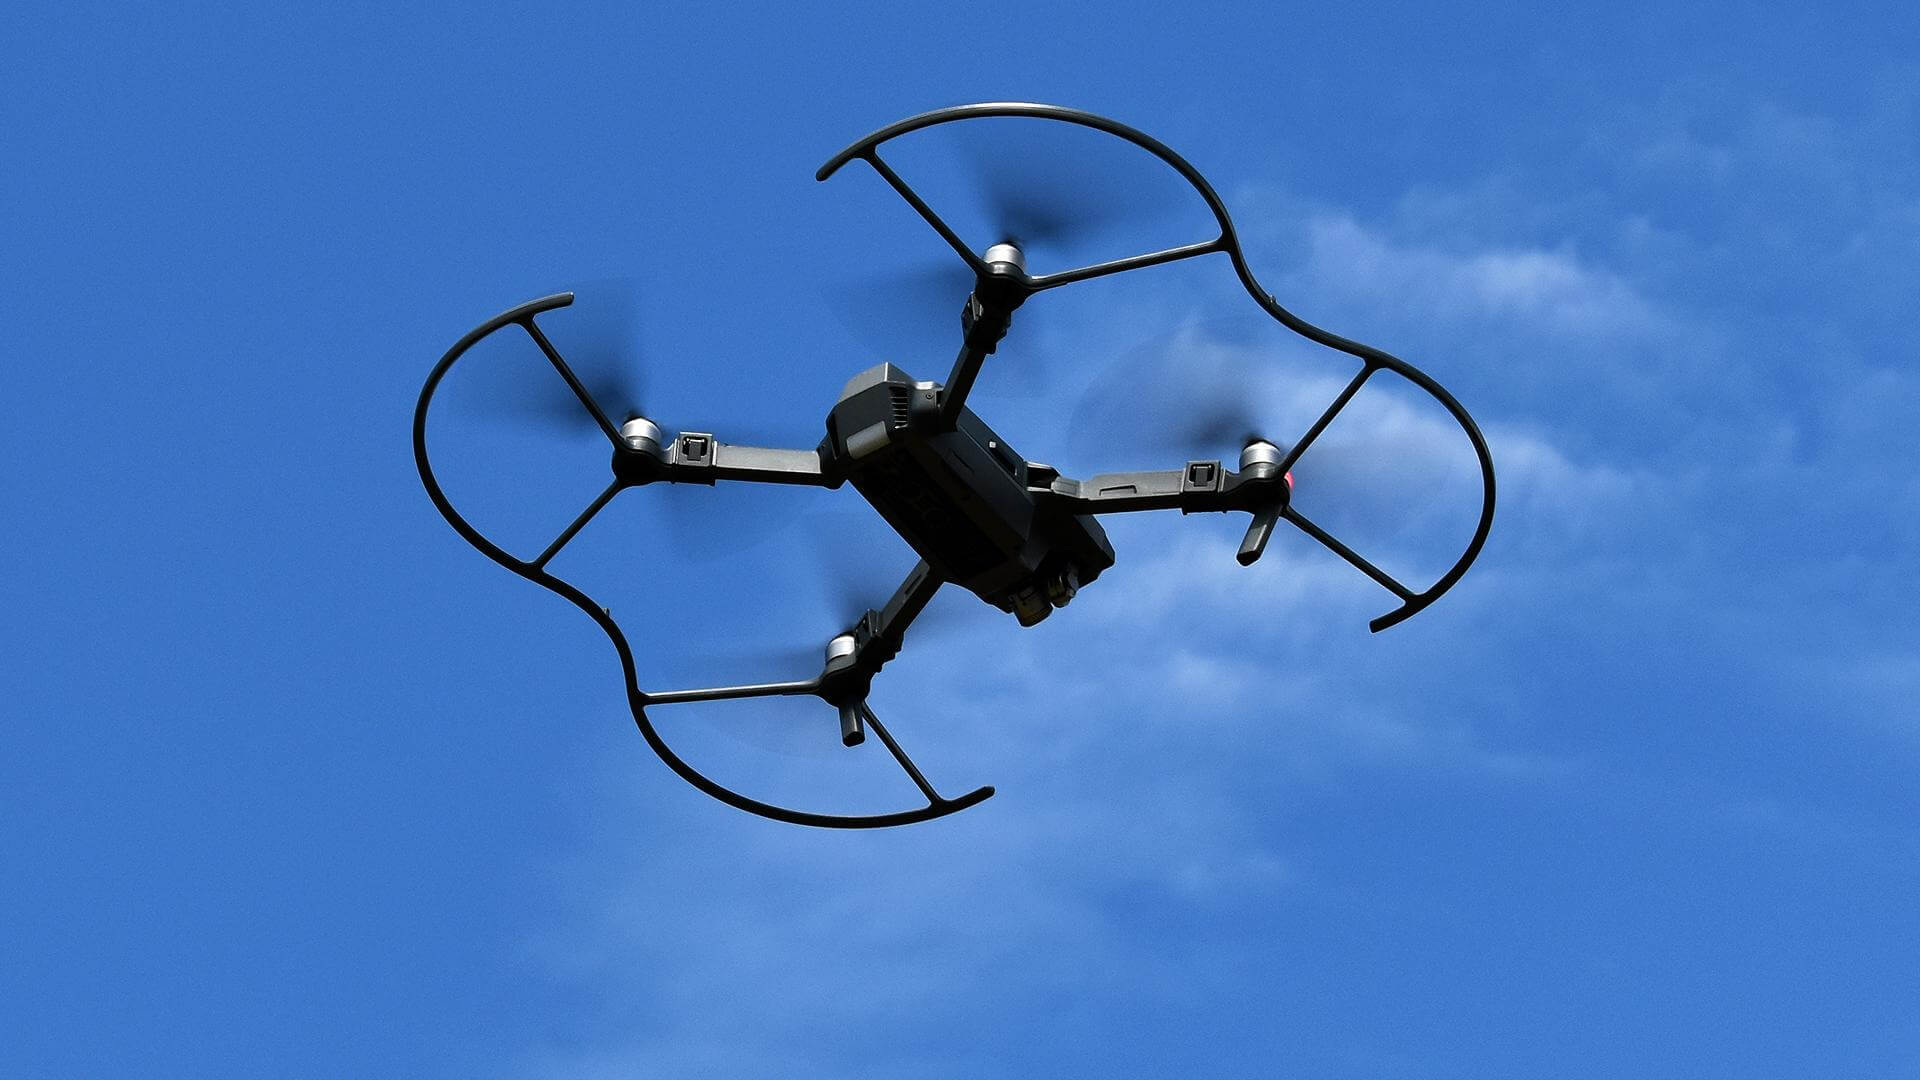 russian-army-will-equip-drones-with-explosives